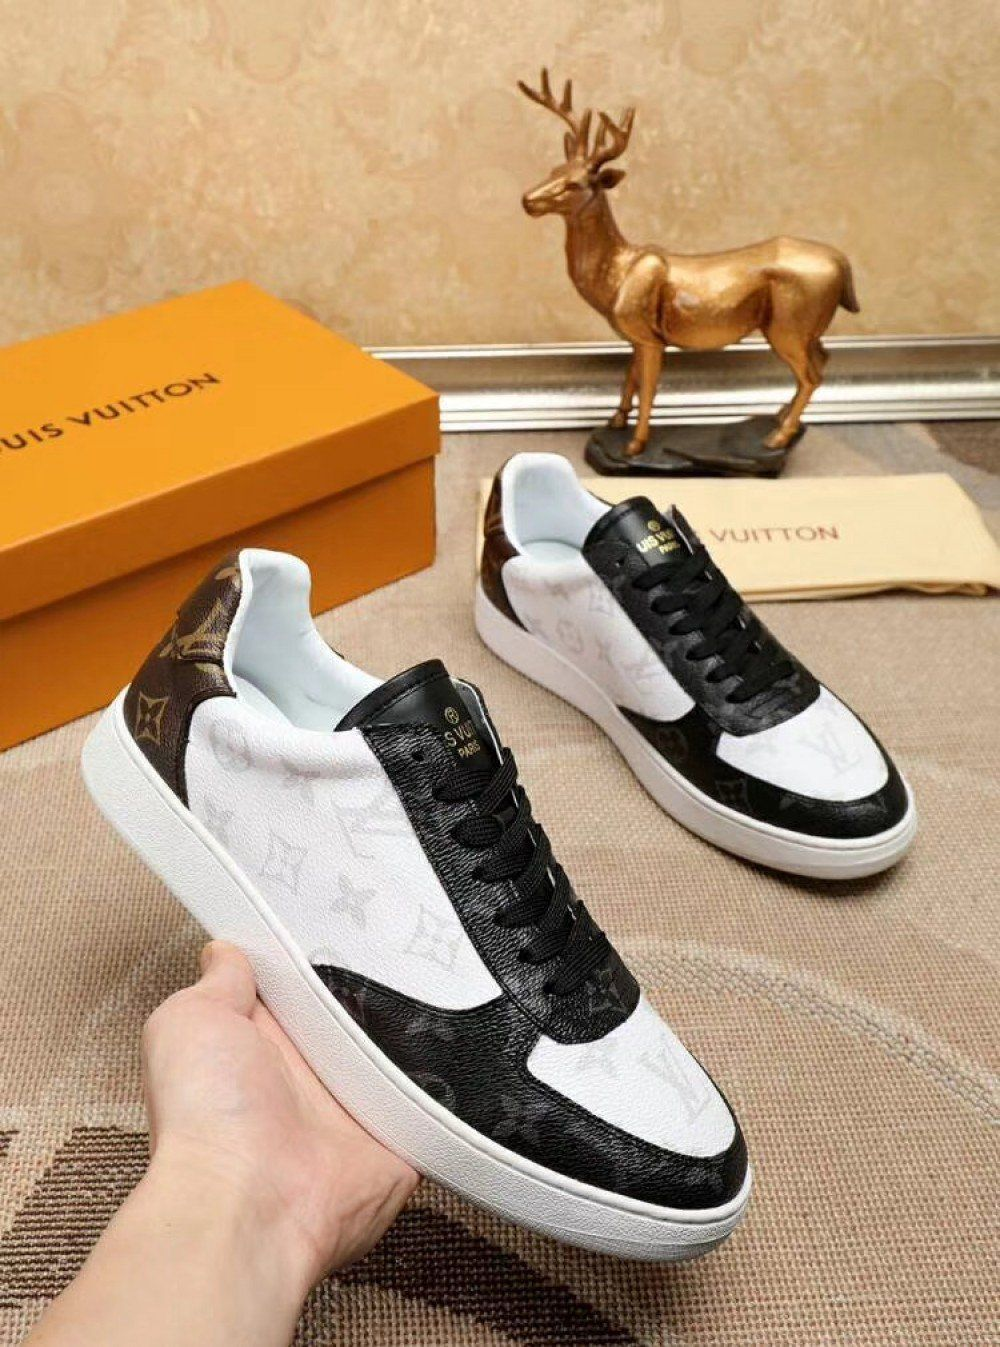 793c57fc9042 Louis Vuitton RIVOLI SNEAKER Men 1A6MIM